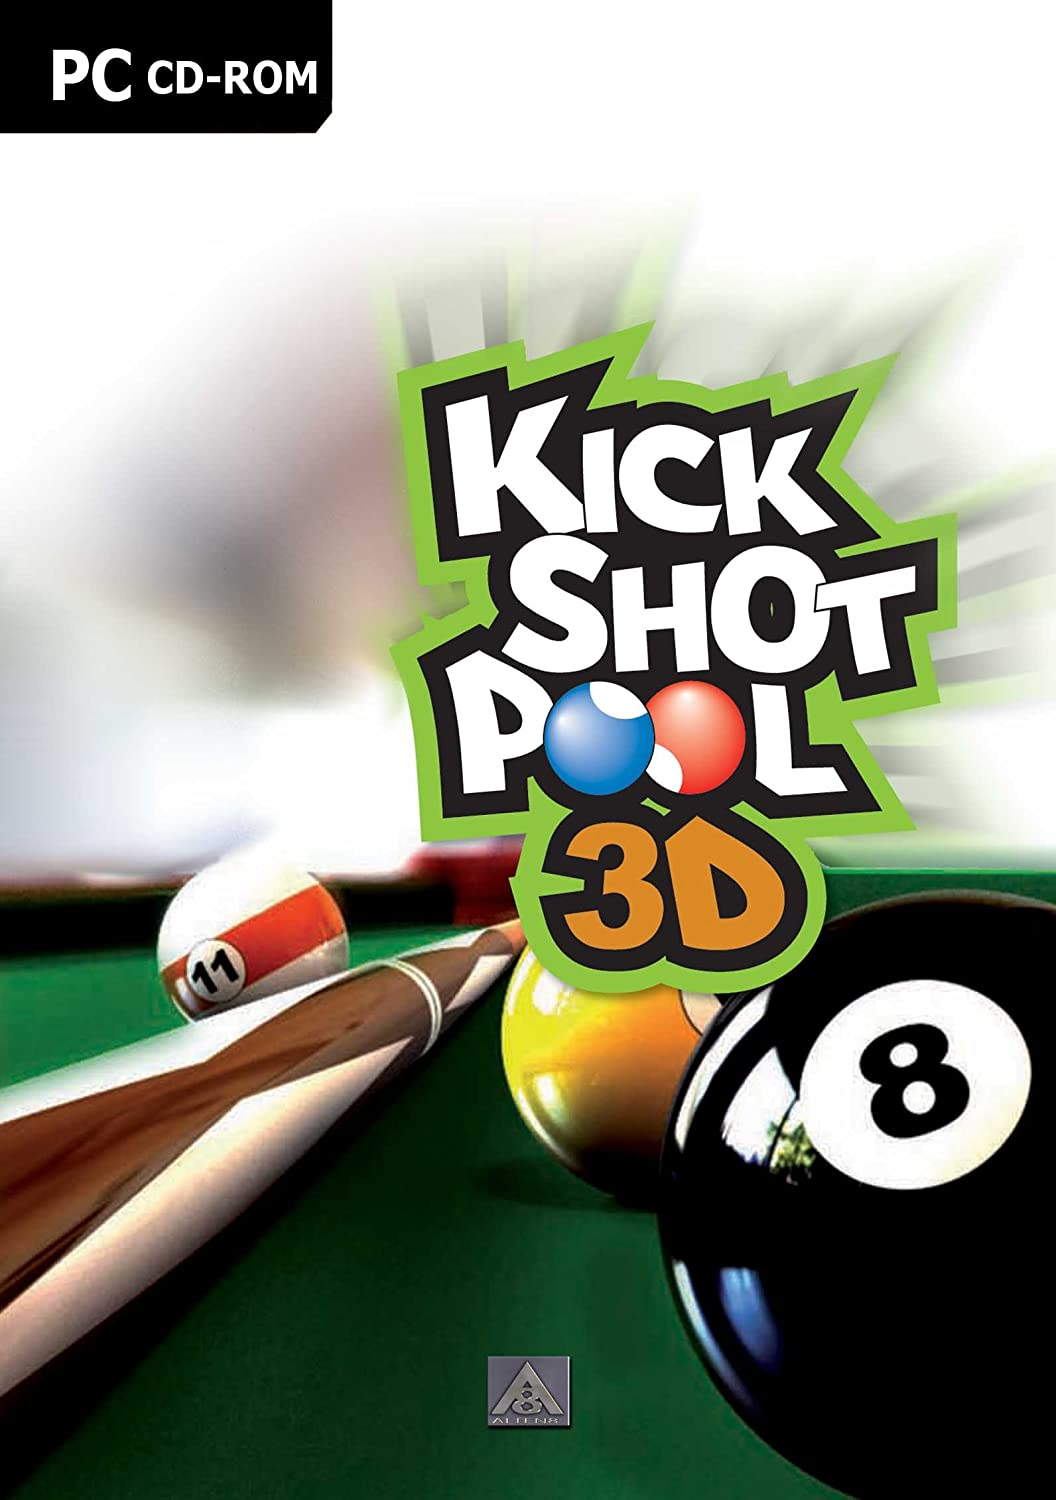 Kick Shot Pool - 3d: Amazon.es: Electrónica